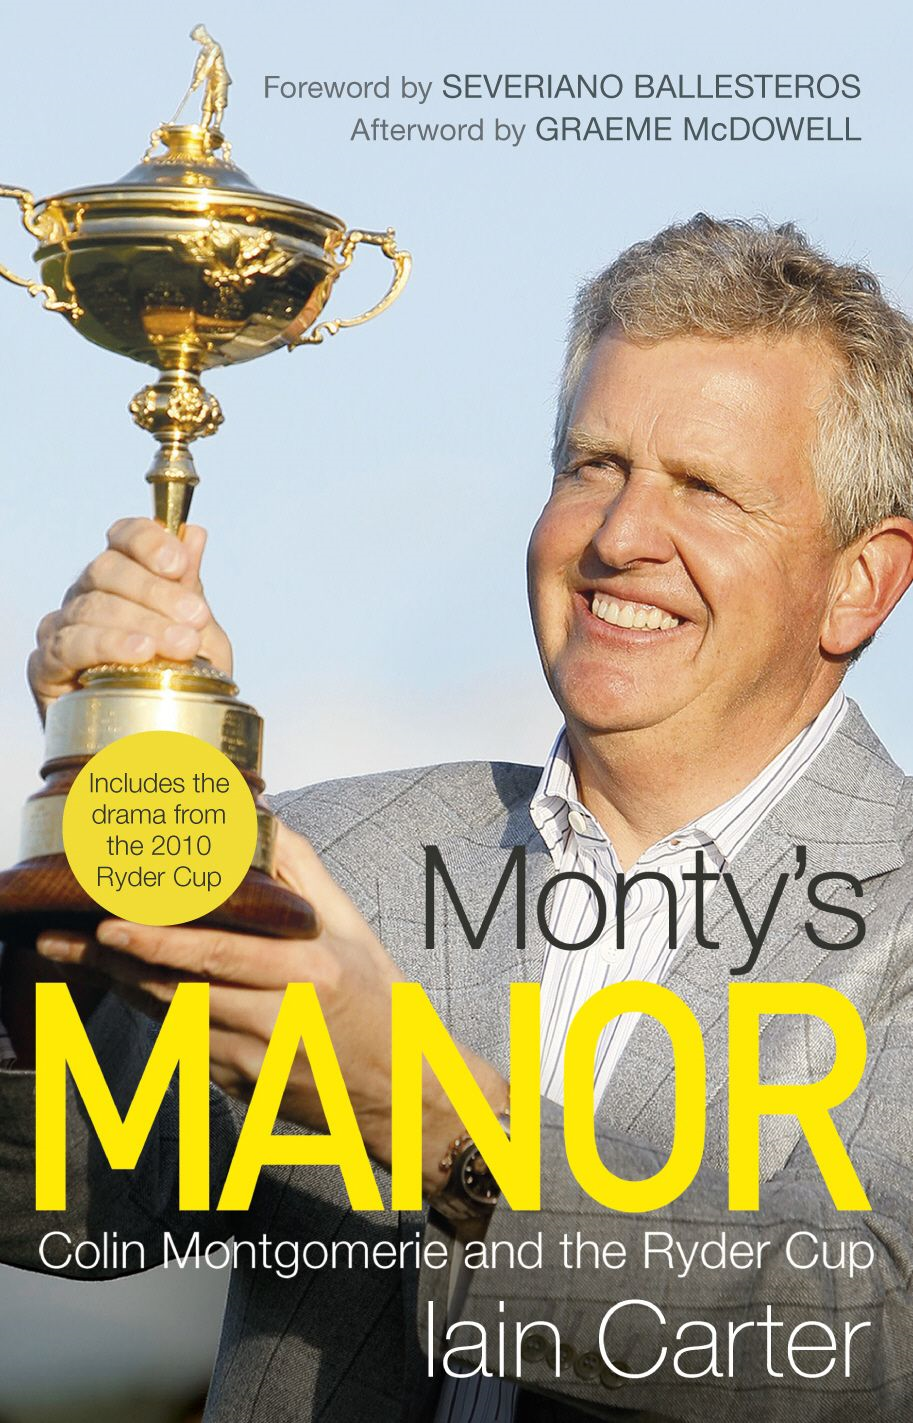 Monty's Manor Colin Montgomerie and the Ryder Cup